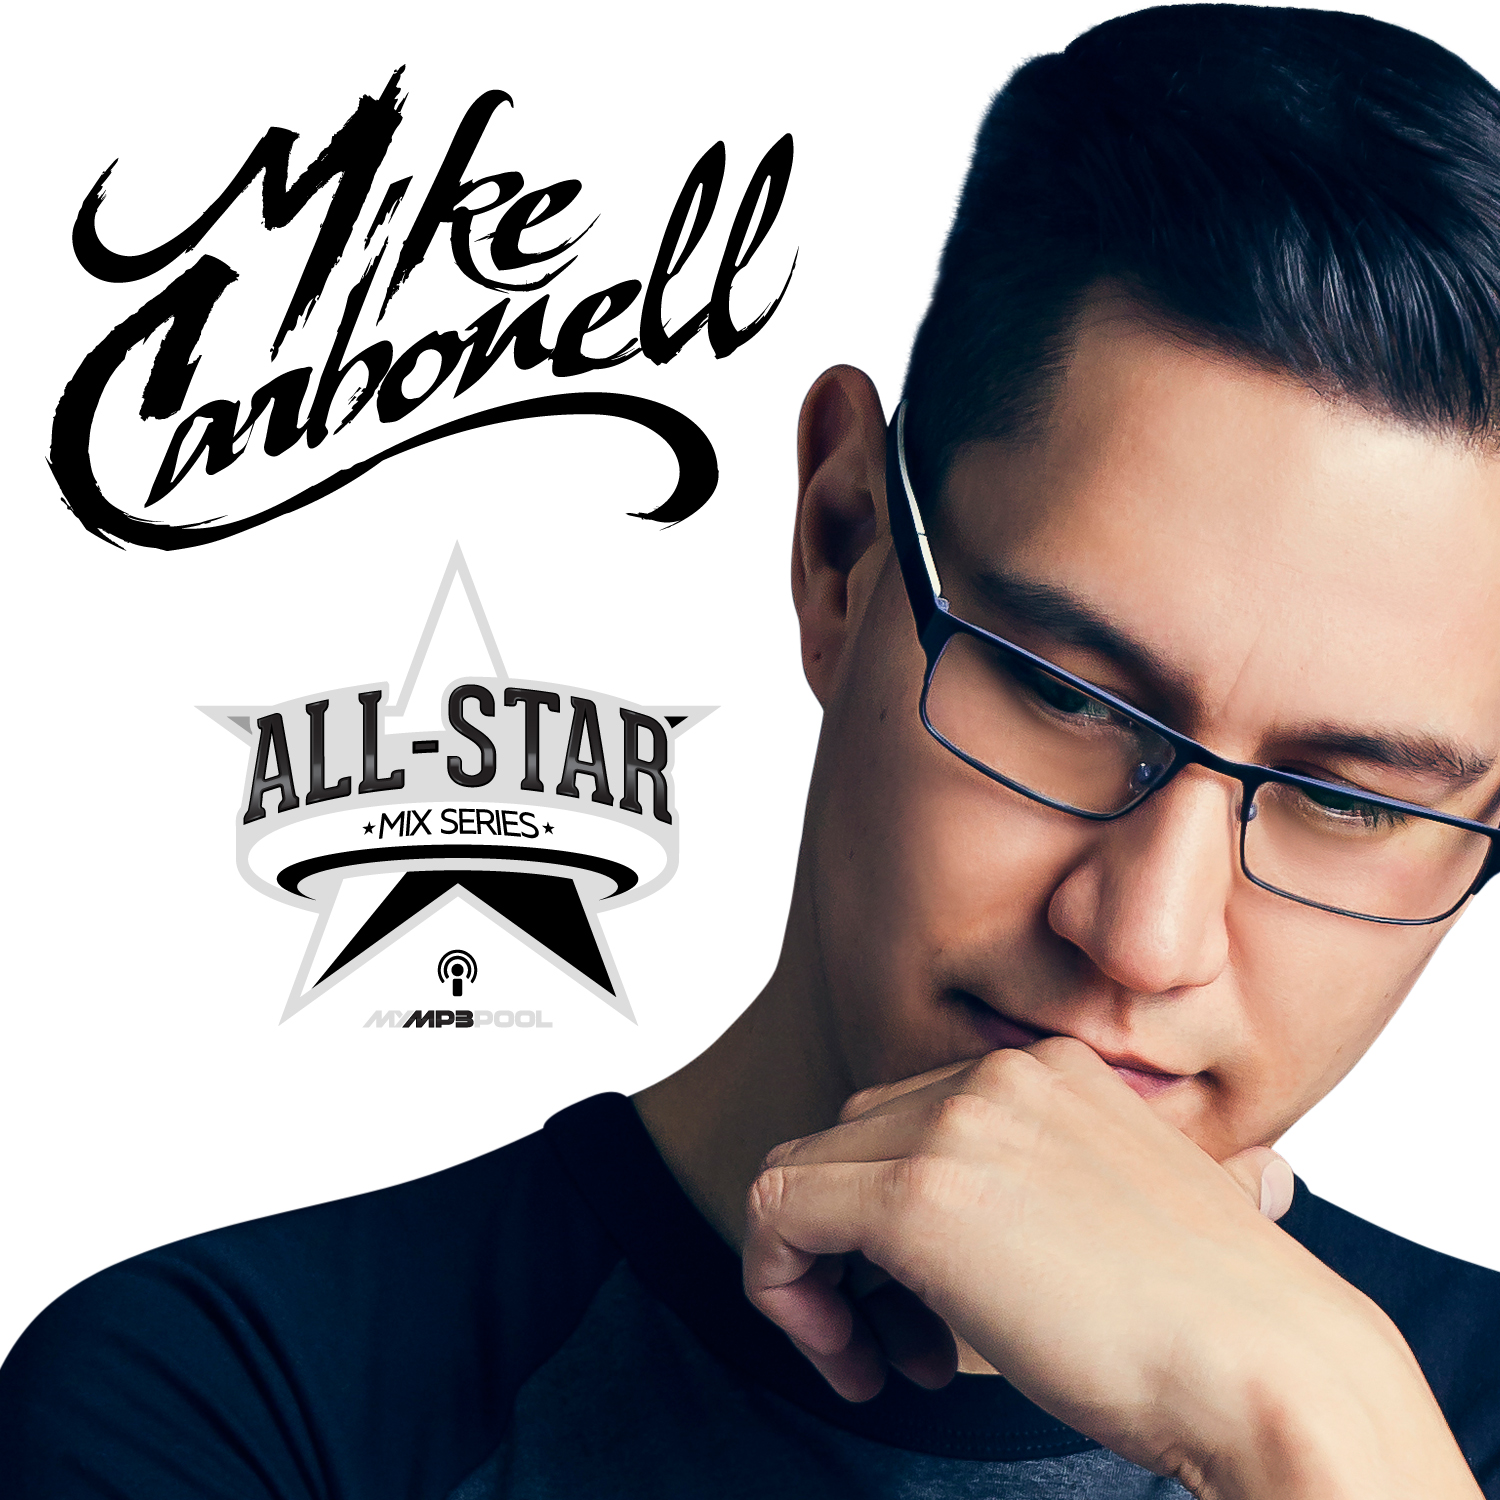 All Star Mix - Mike Carbonell covert art